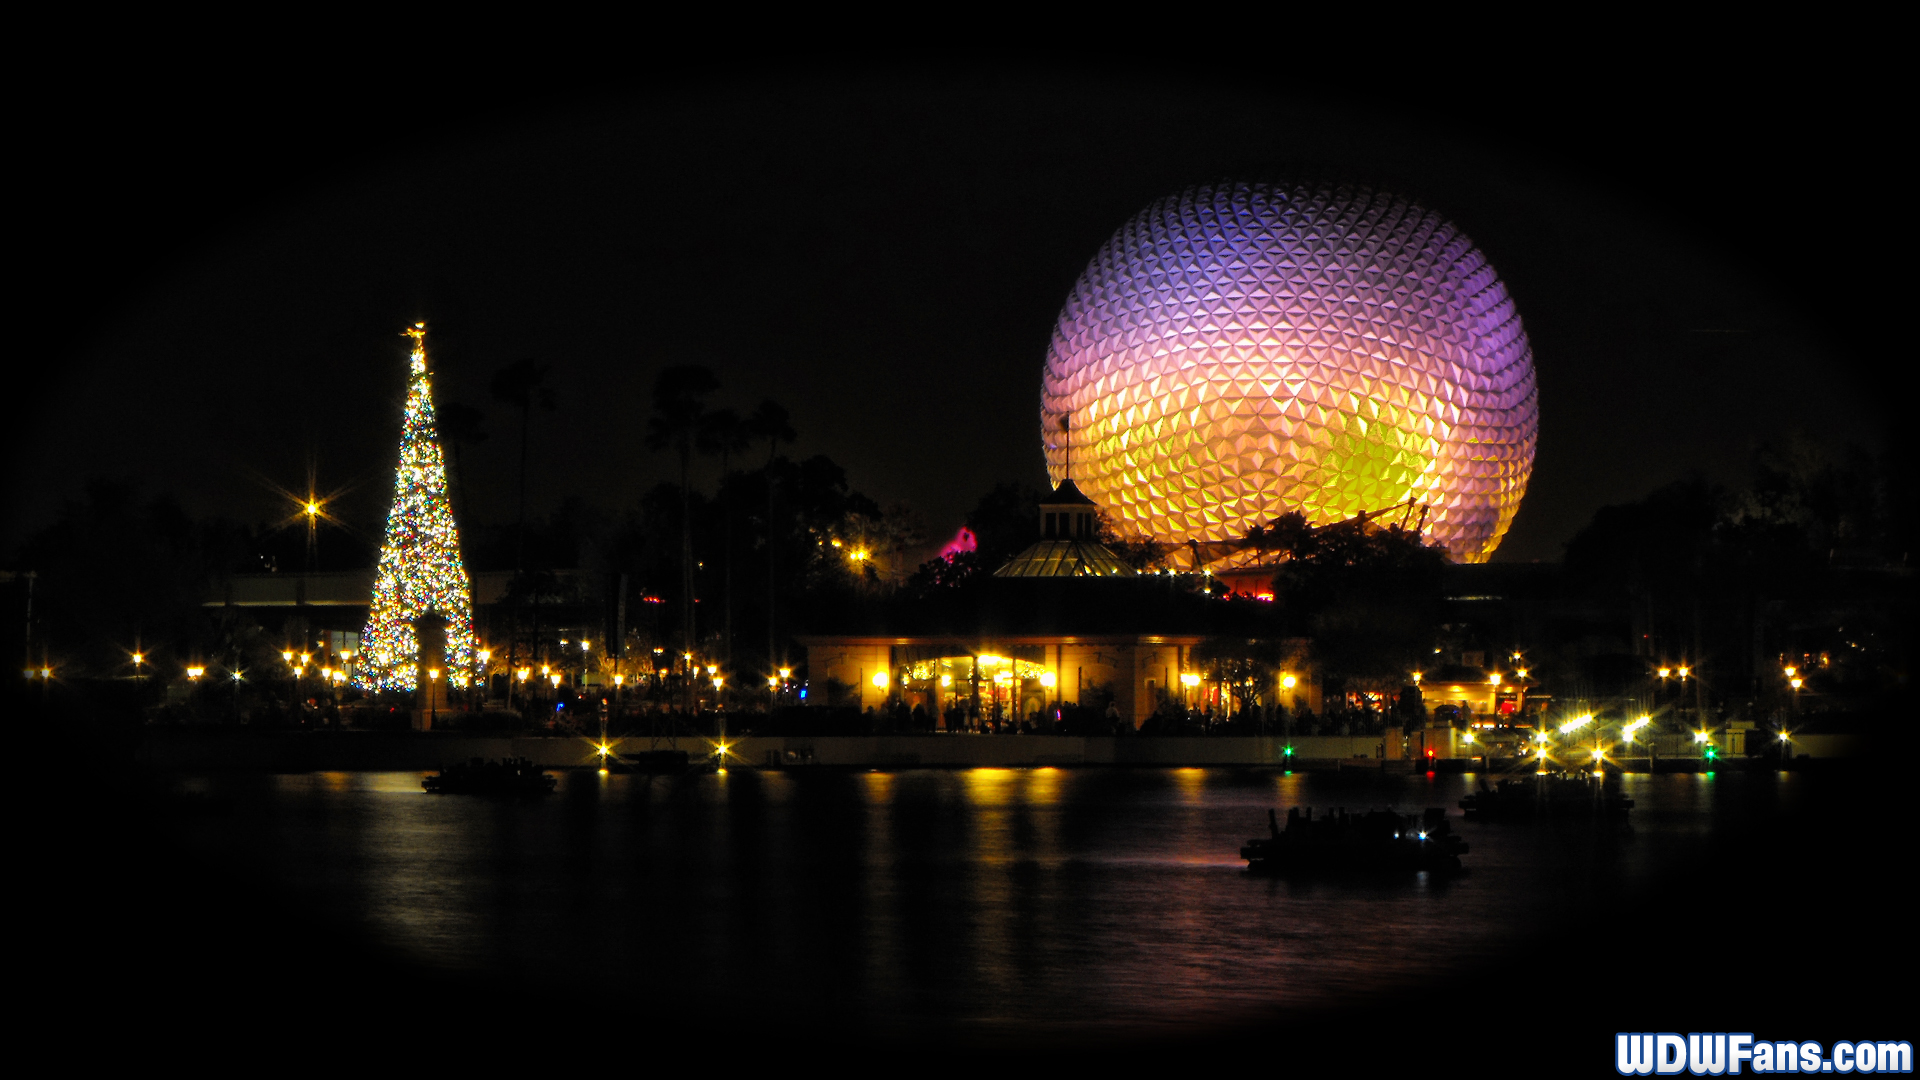 Free Disney World Wallpapers Wdwfans